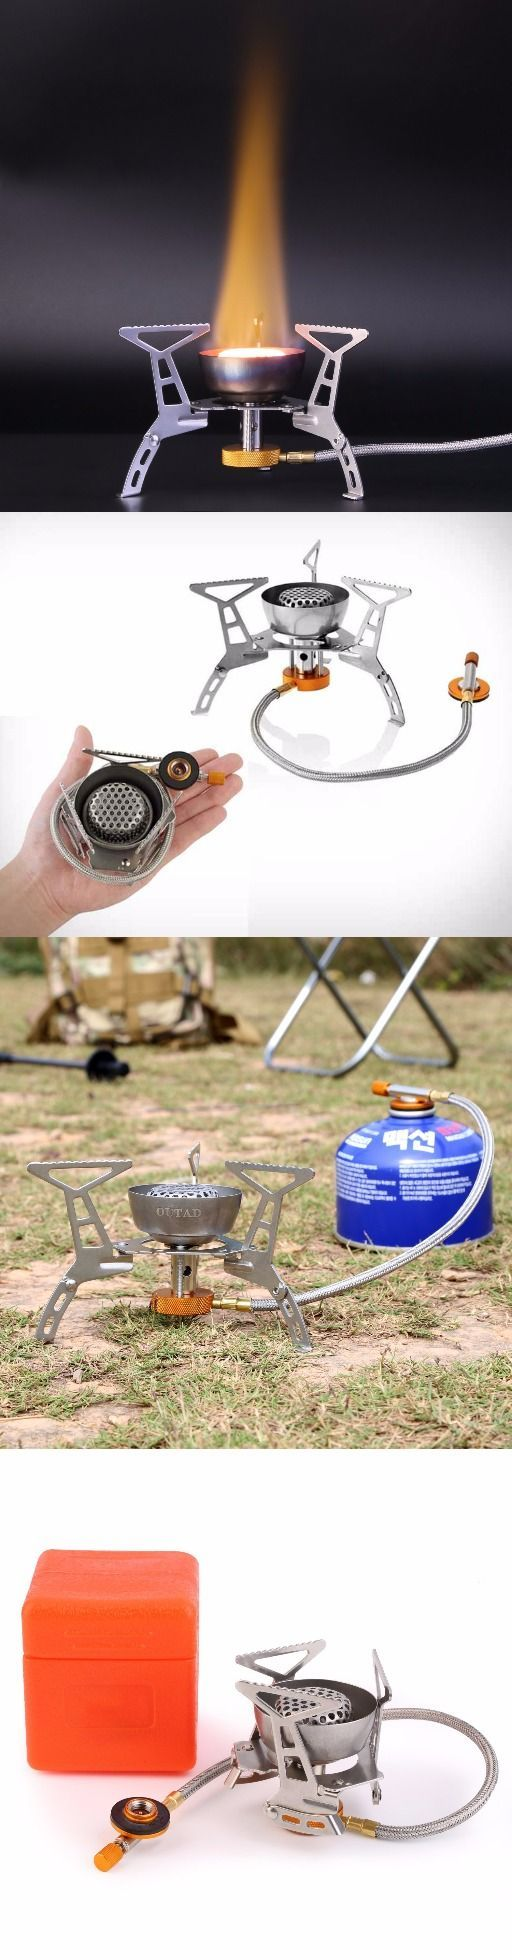 OUTAD Windproof Foldable Camping Stove for Outdoor Backpacking//Hiking